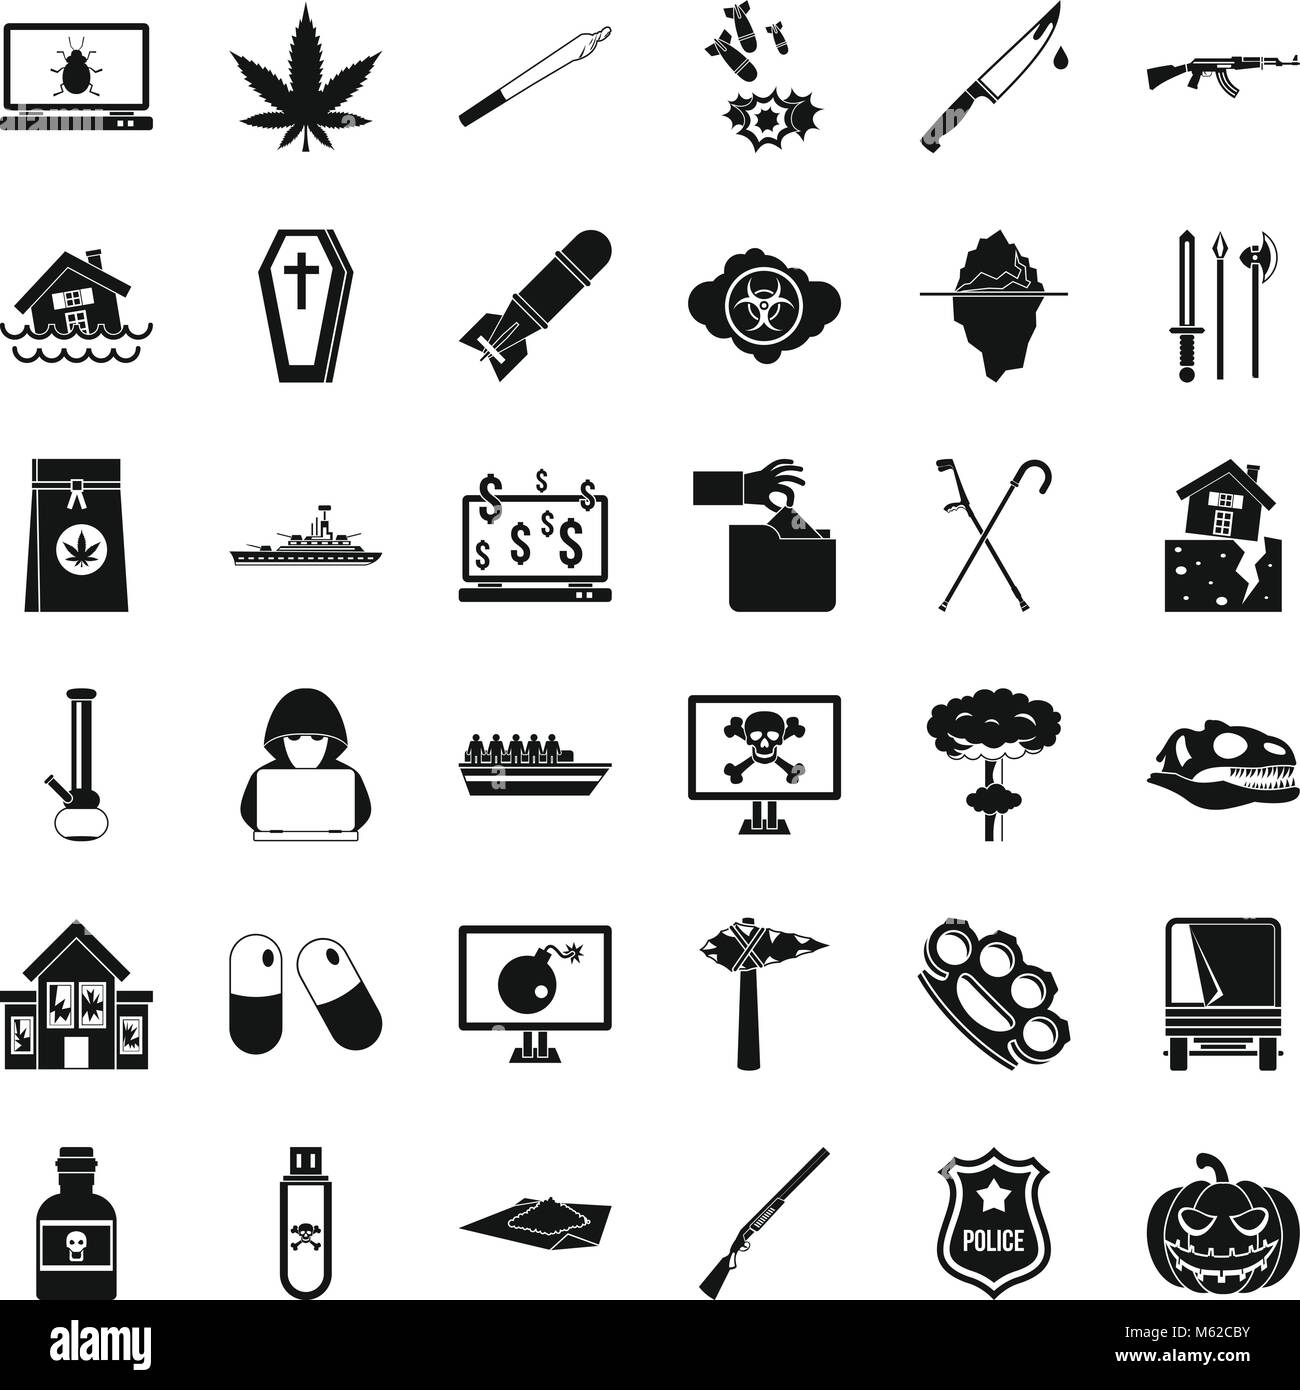 Callousness icons set, simple style - Stock Image